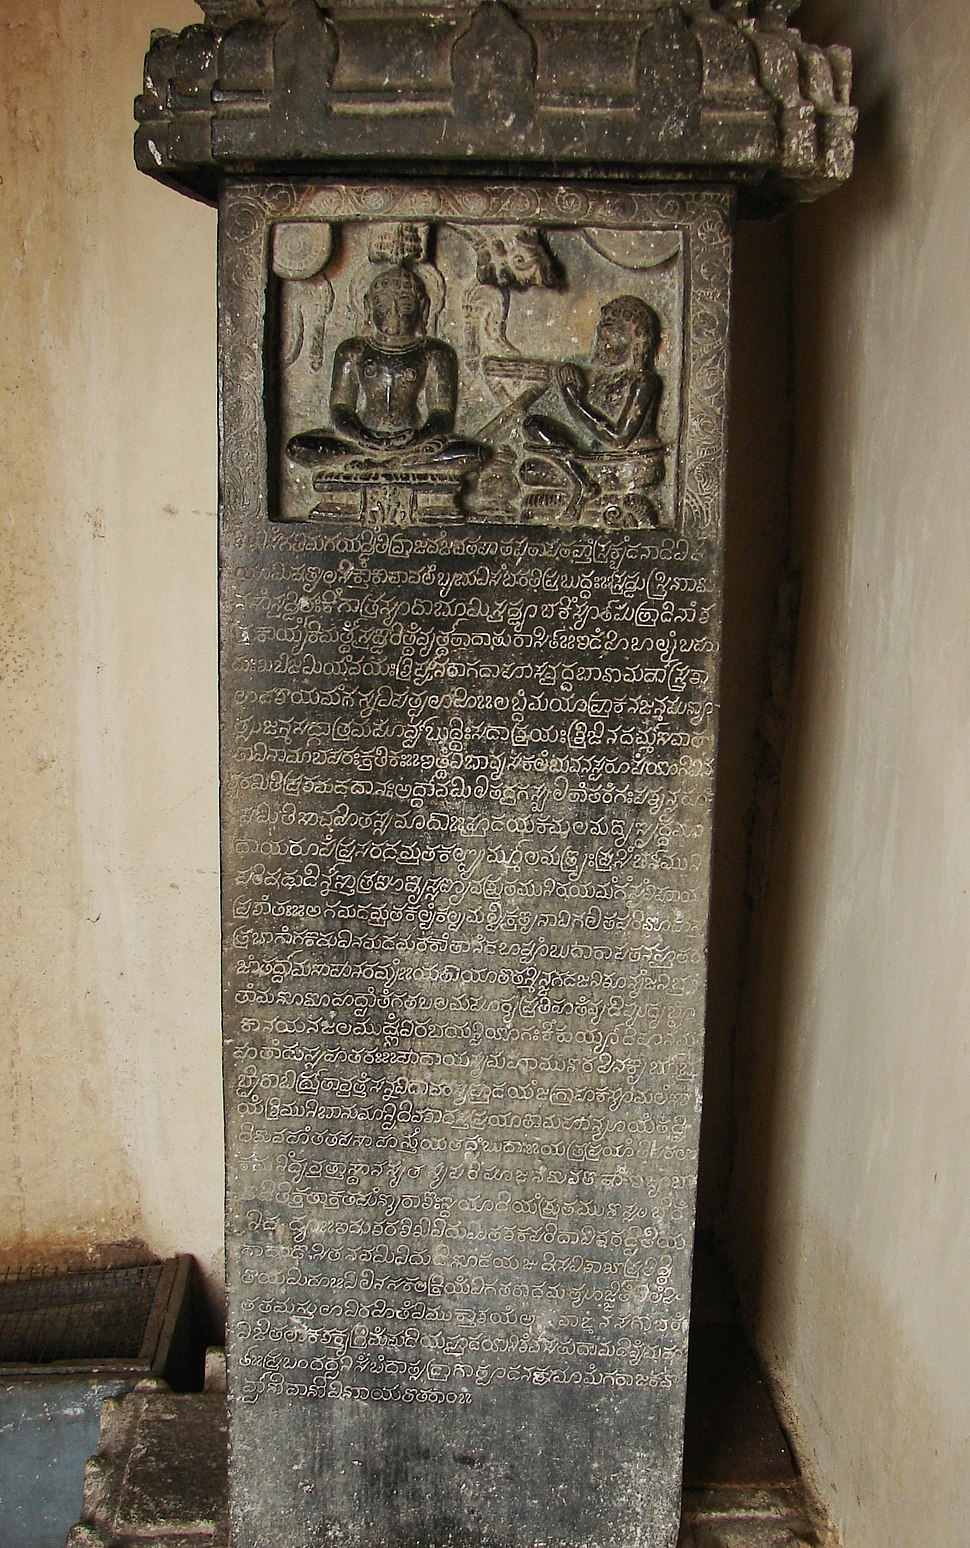 Poetic Kannada inscription of Manjaraja dated 1398 CE at Vindyagiri hill in Shravanabelagola